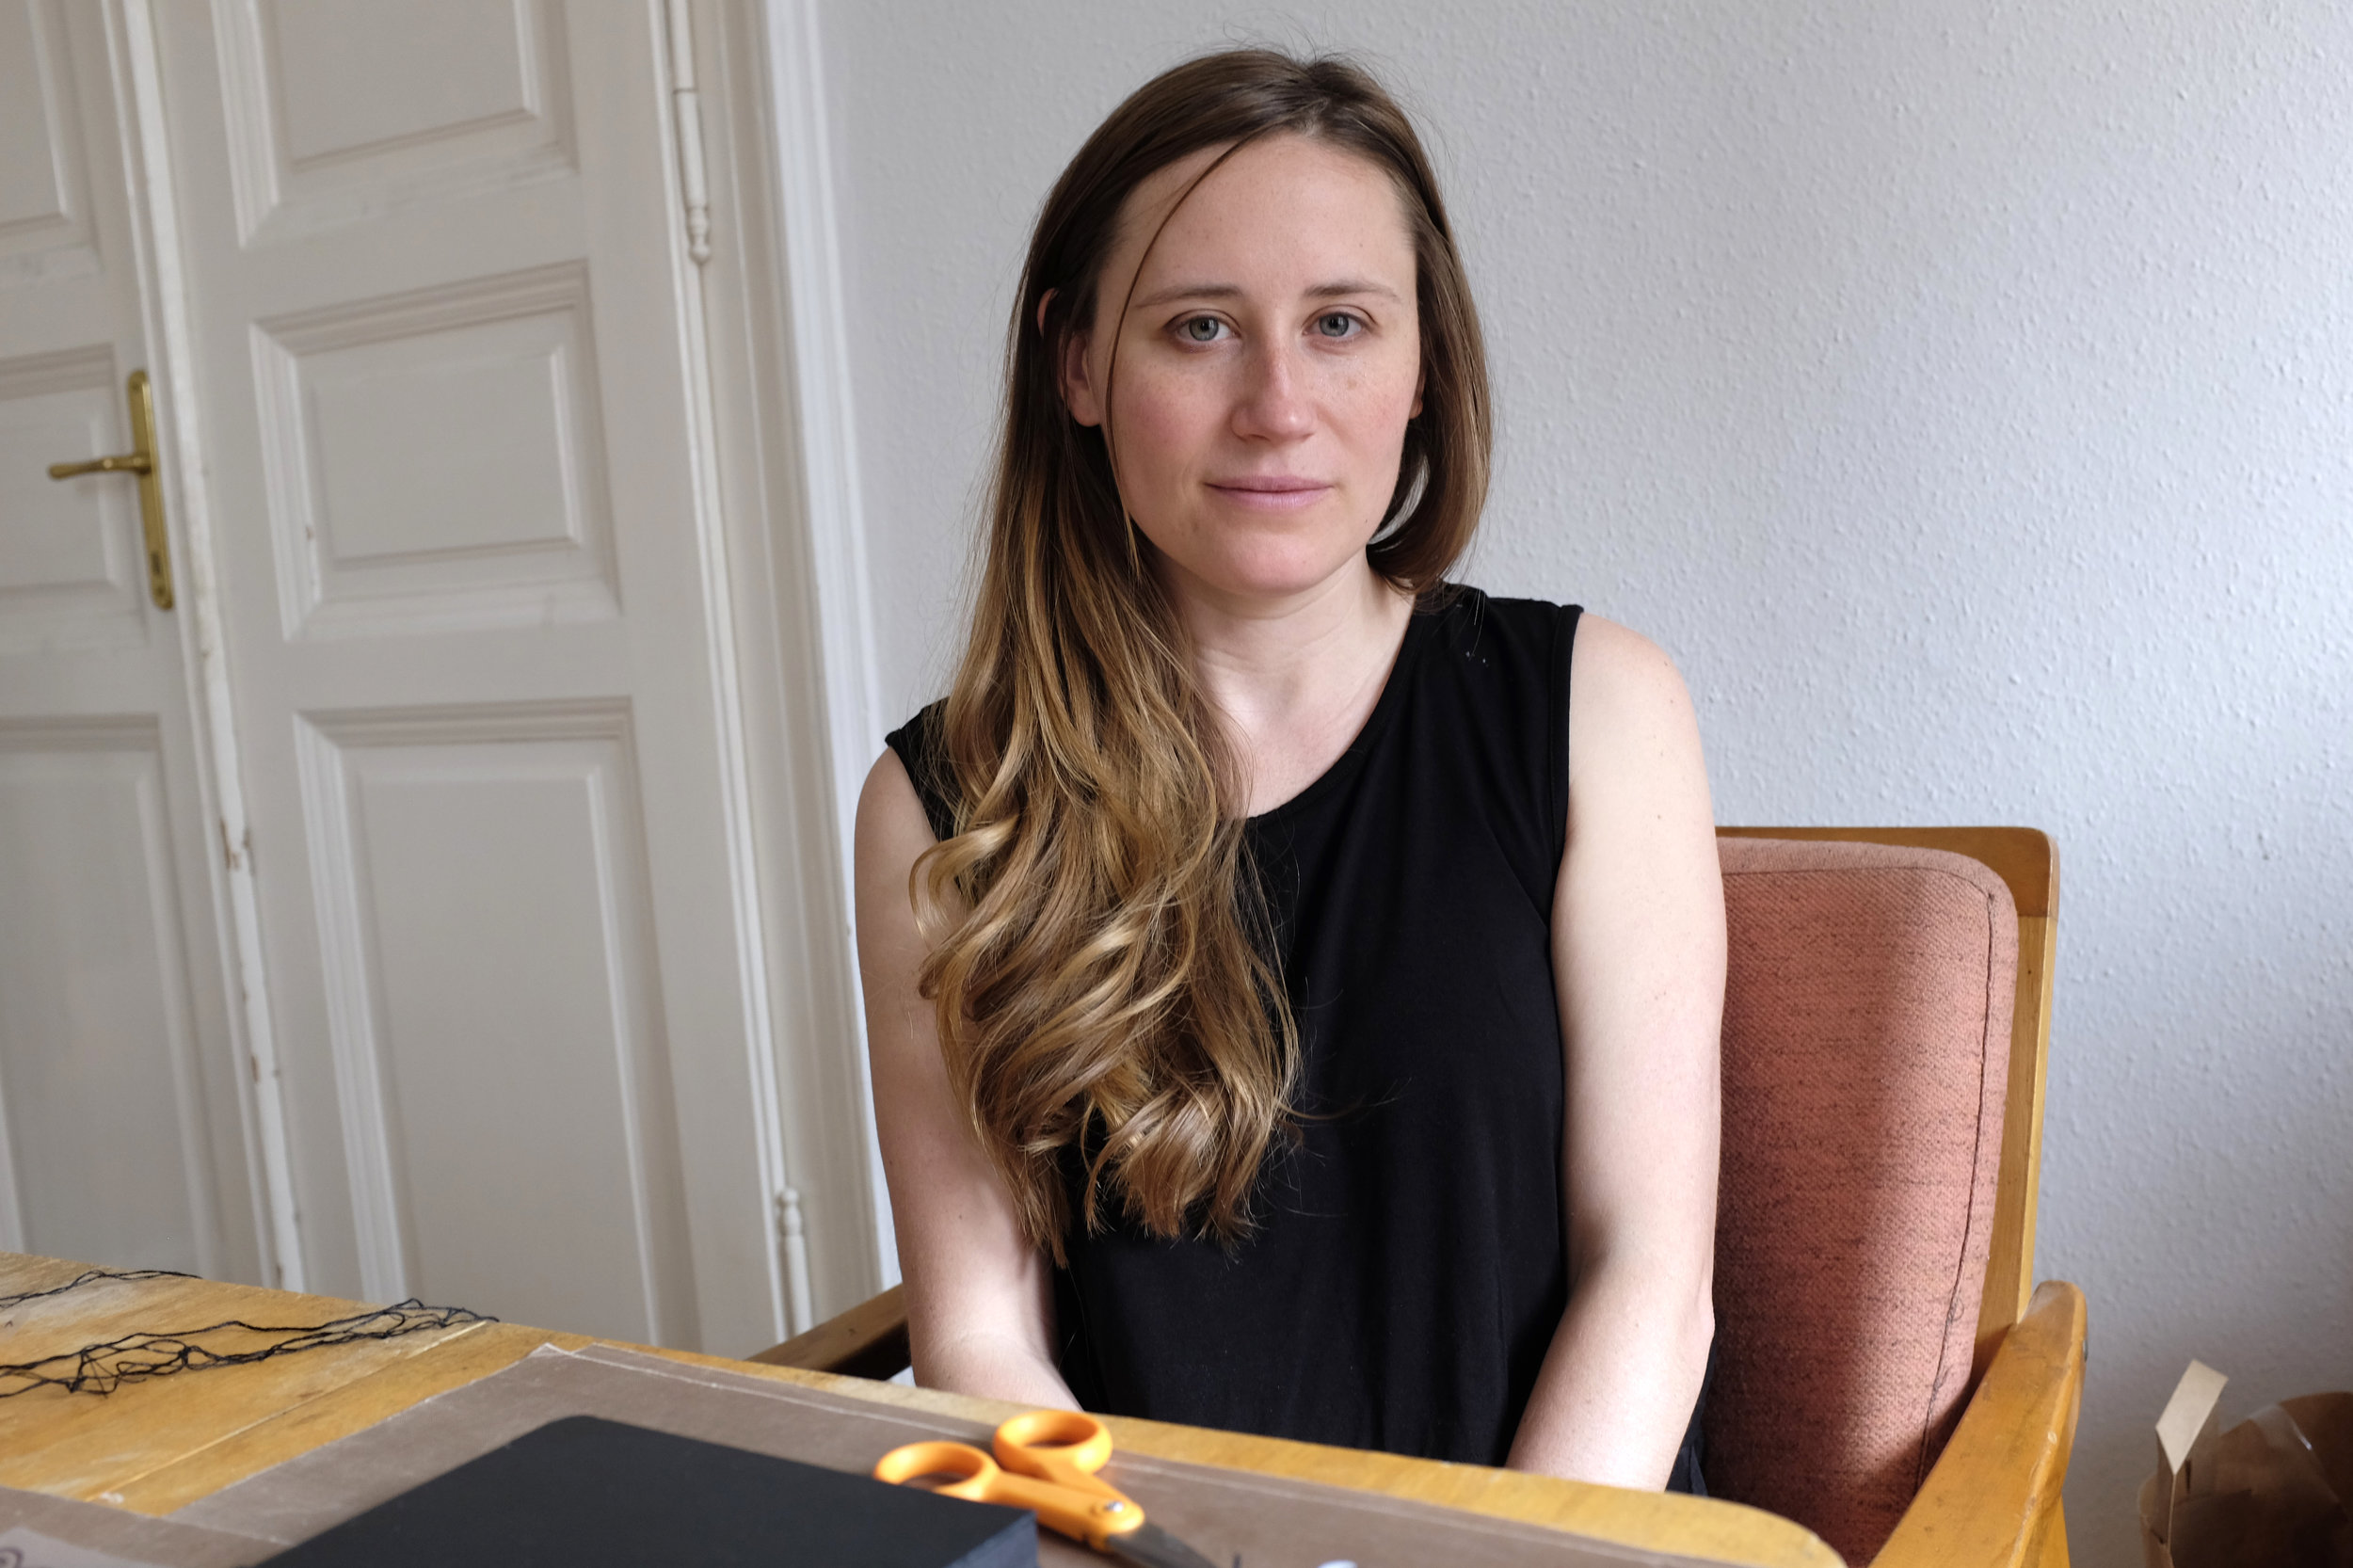 Heather Beardsley    Heather Beardsley received her MFA from the School of the Art Institute of Chicago in Fibers and Material Studies in 2015, a Post-Baccalaureate Certificate in Fine Arts from Maryland Institute College of Art in 2012, and a BA in History and Art from the University of Virginia in 2009. Following her MFA, Heather was granted a Fulbright Scholarship for Installation Art in Vienna, Austria.   More